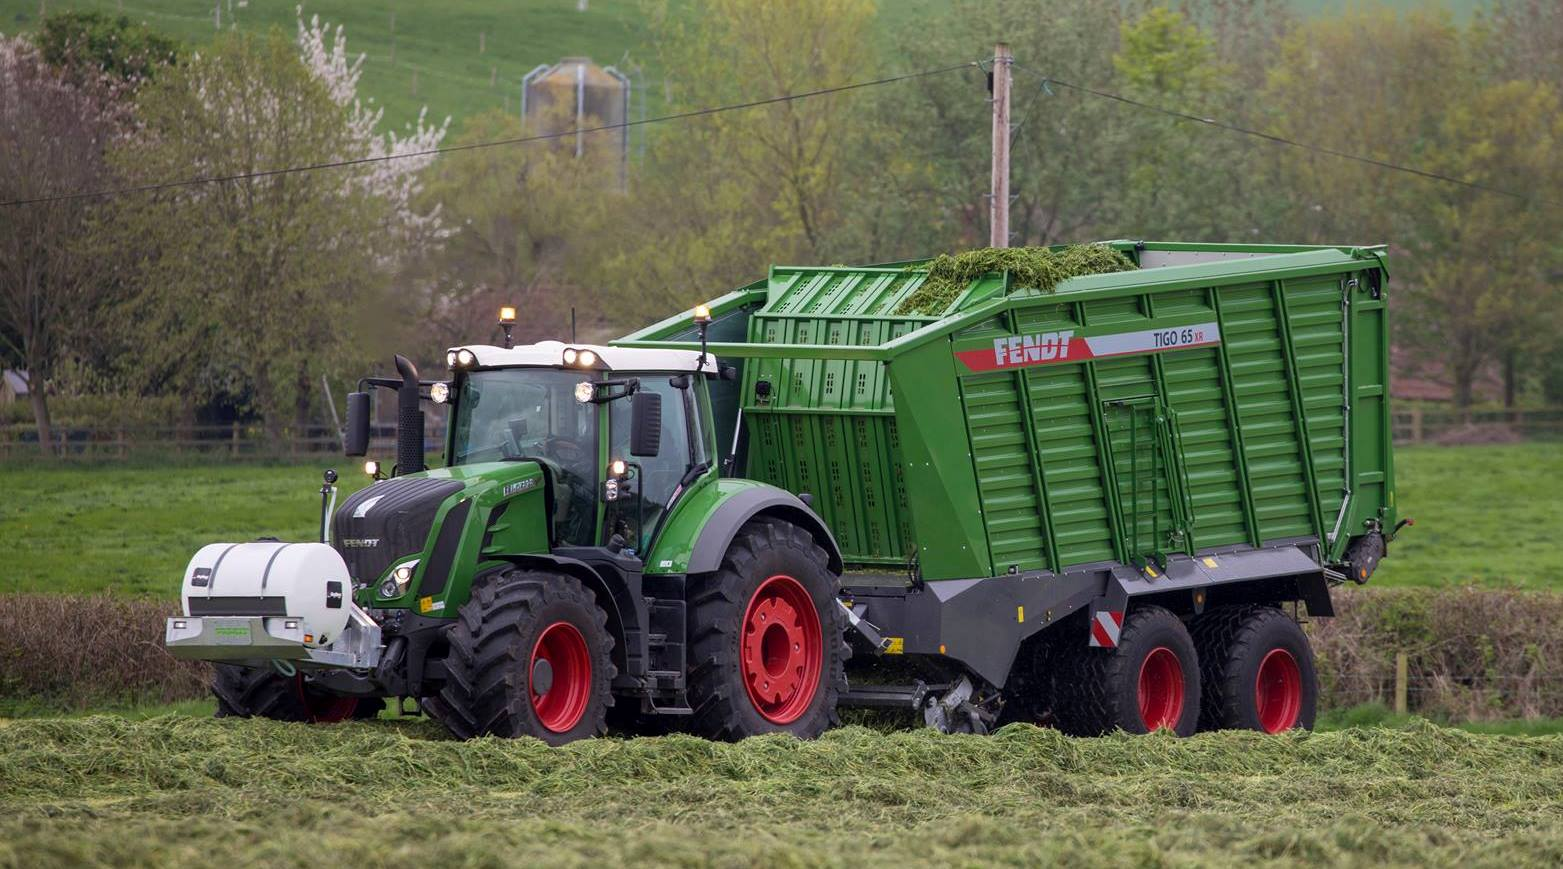 Fendt Front Linkage Applicators for balers and forage wagons